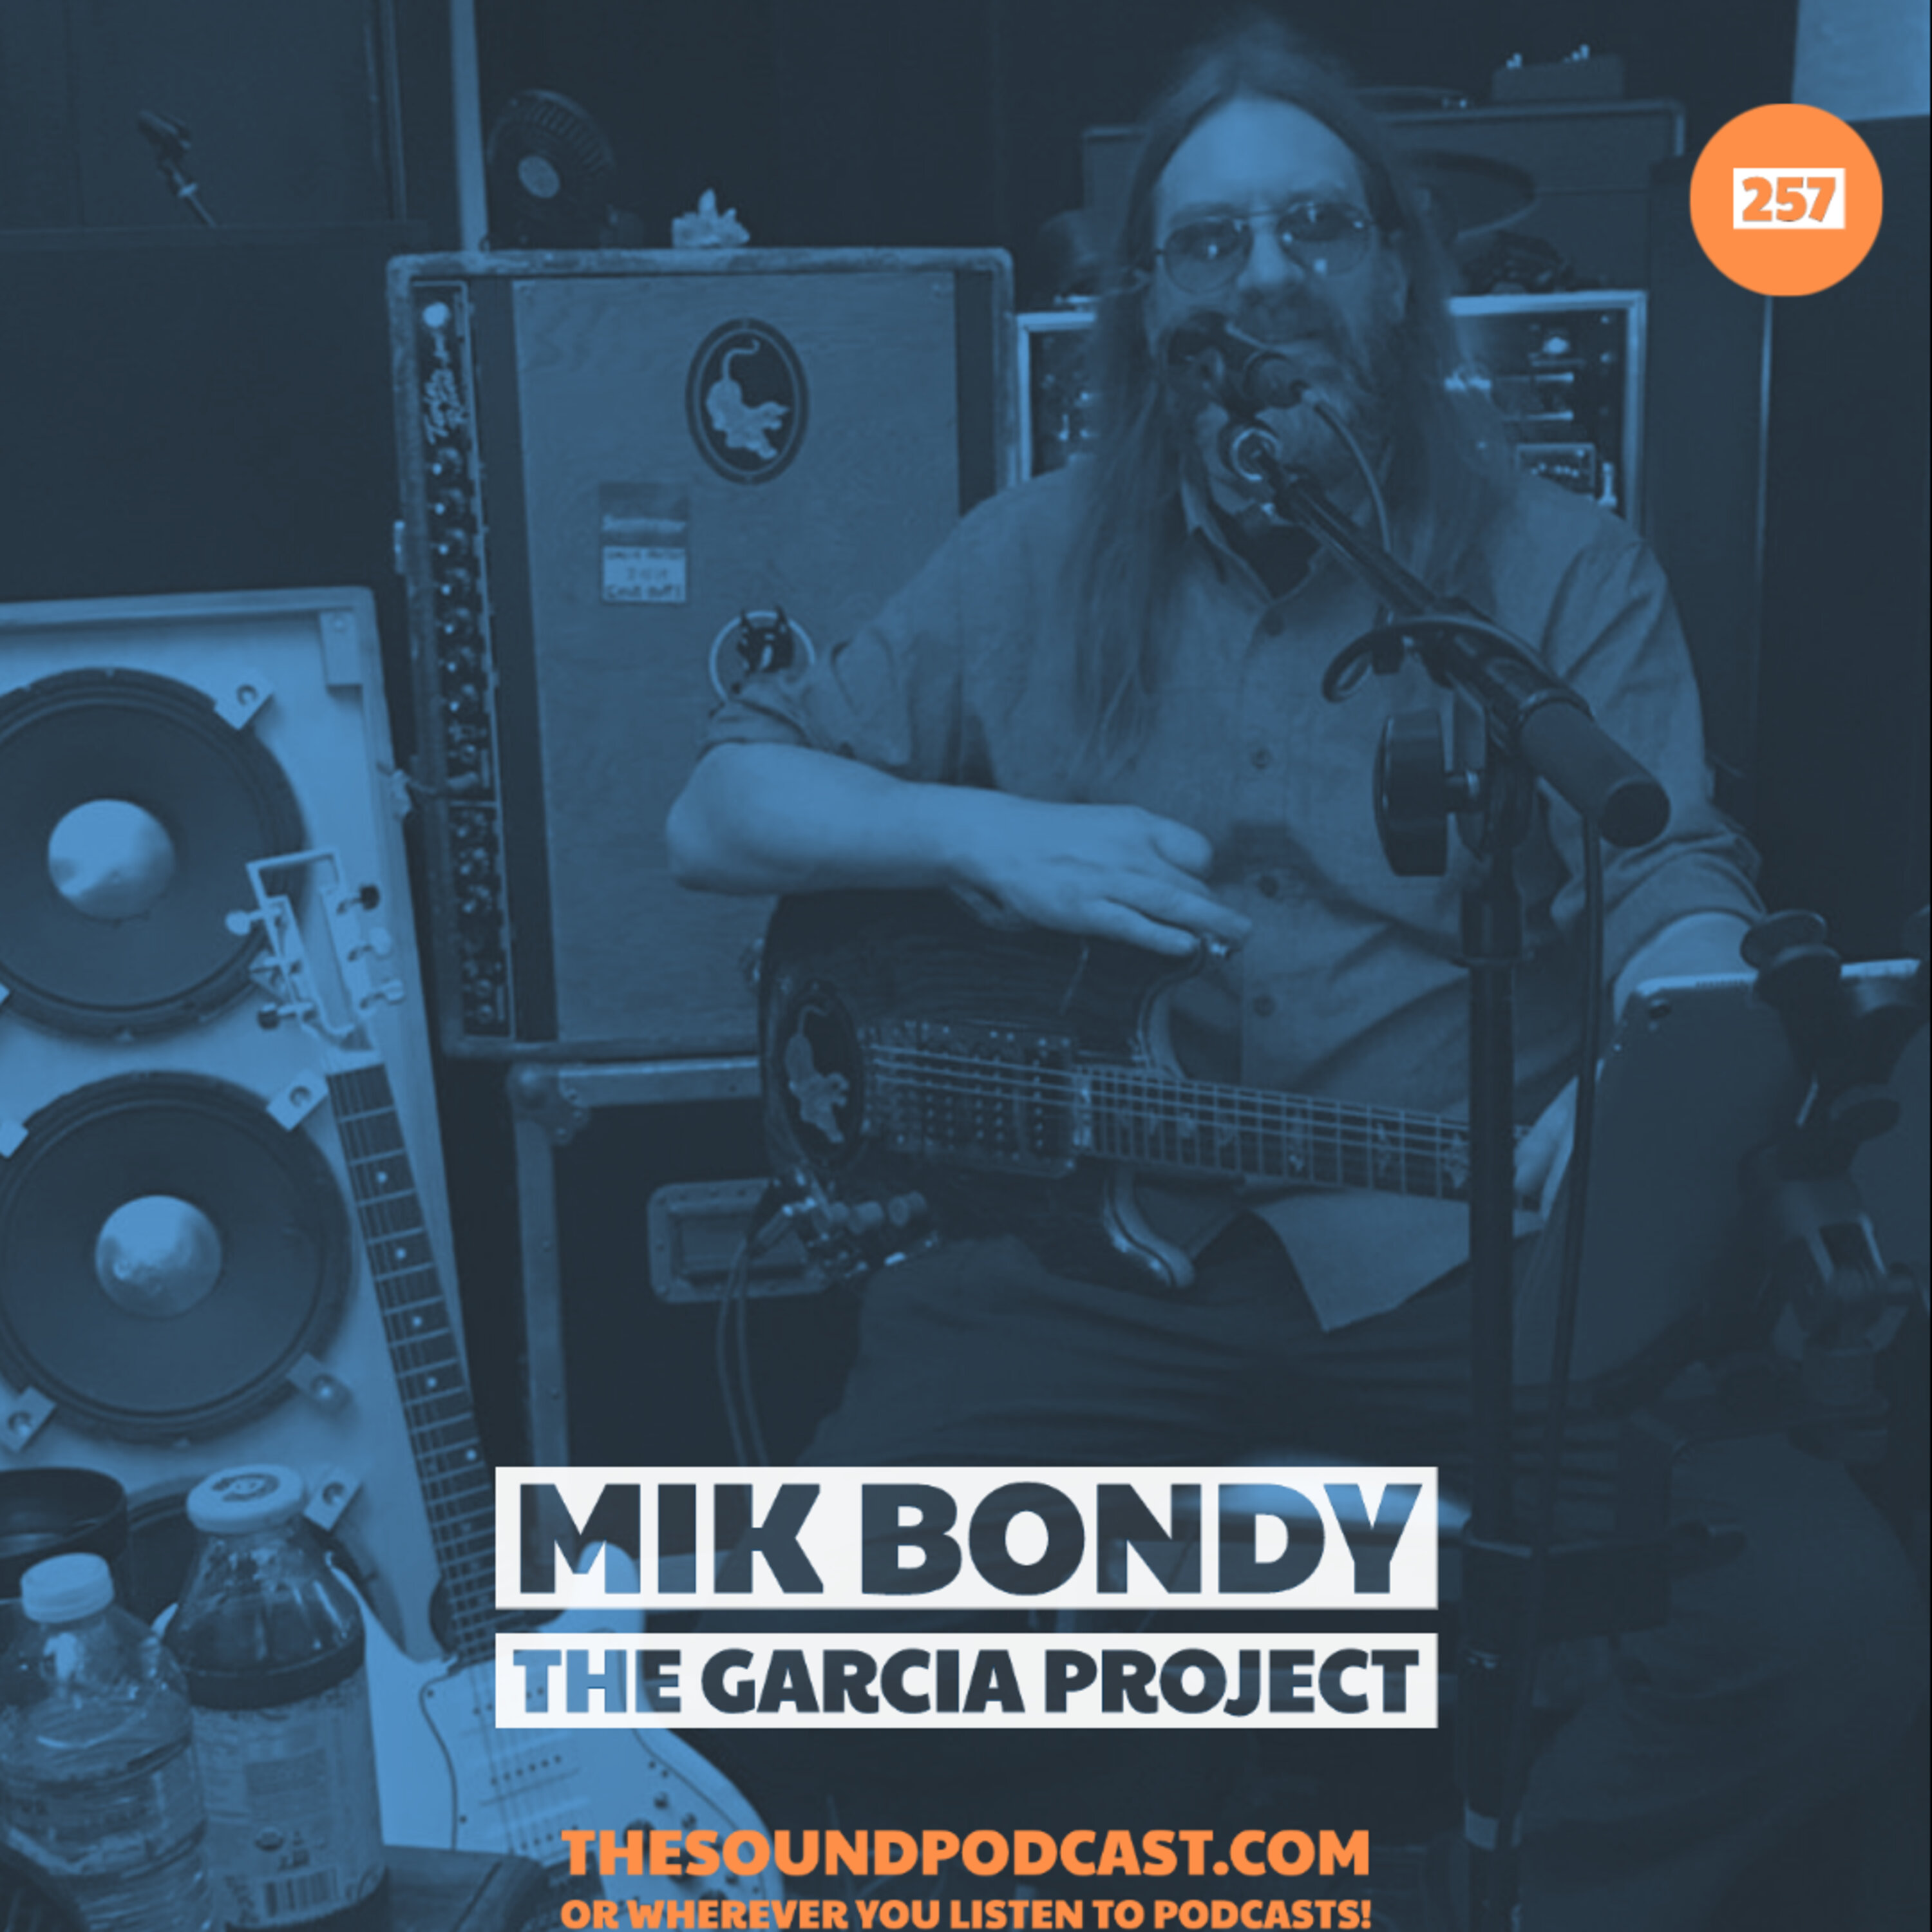 Mik Bondy of The Garcia Project